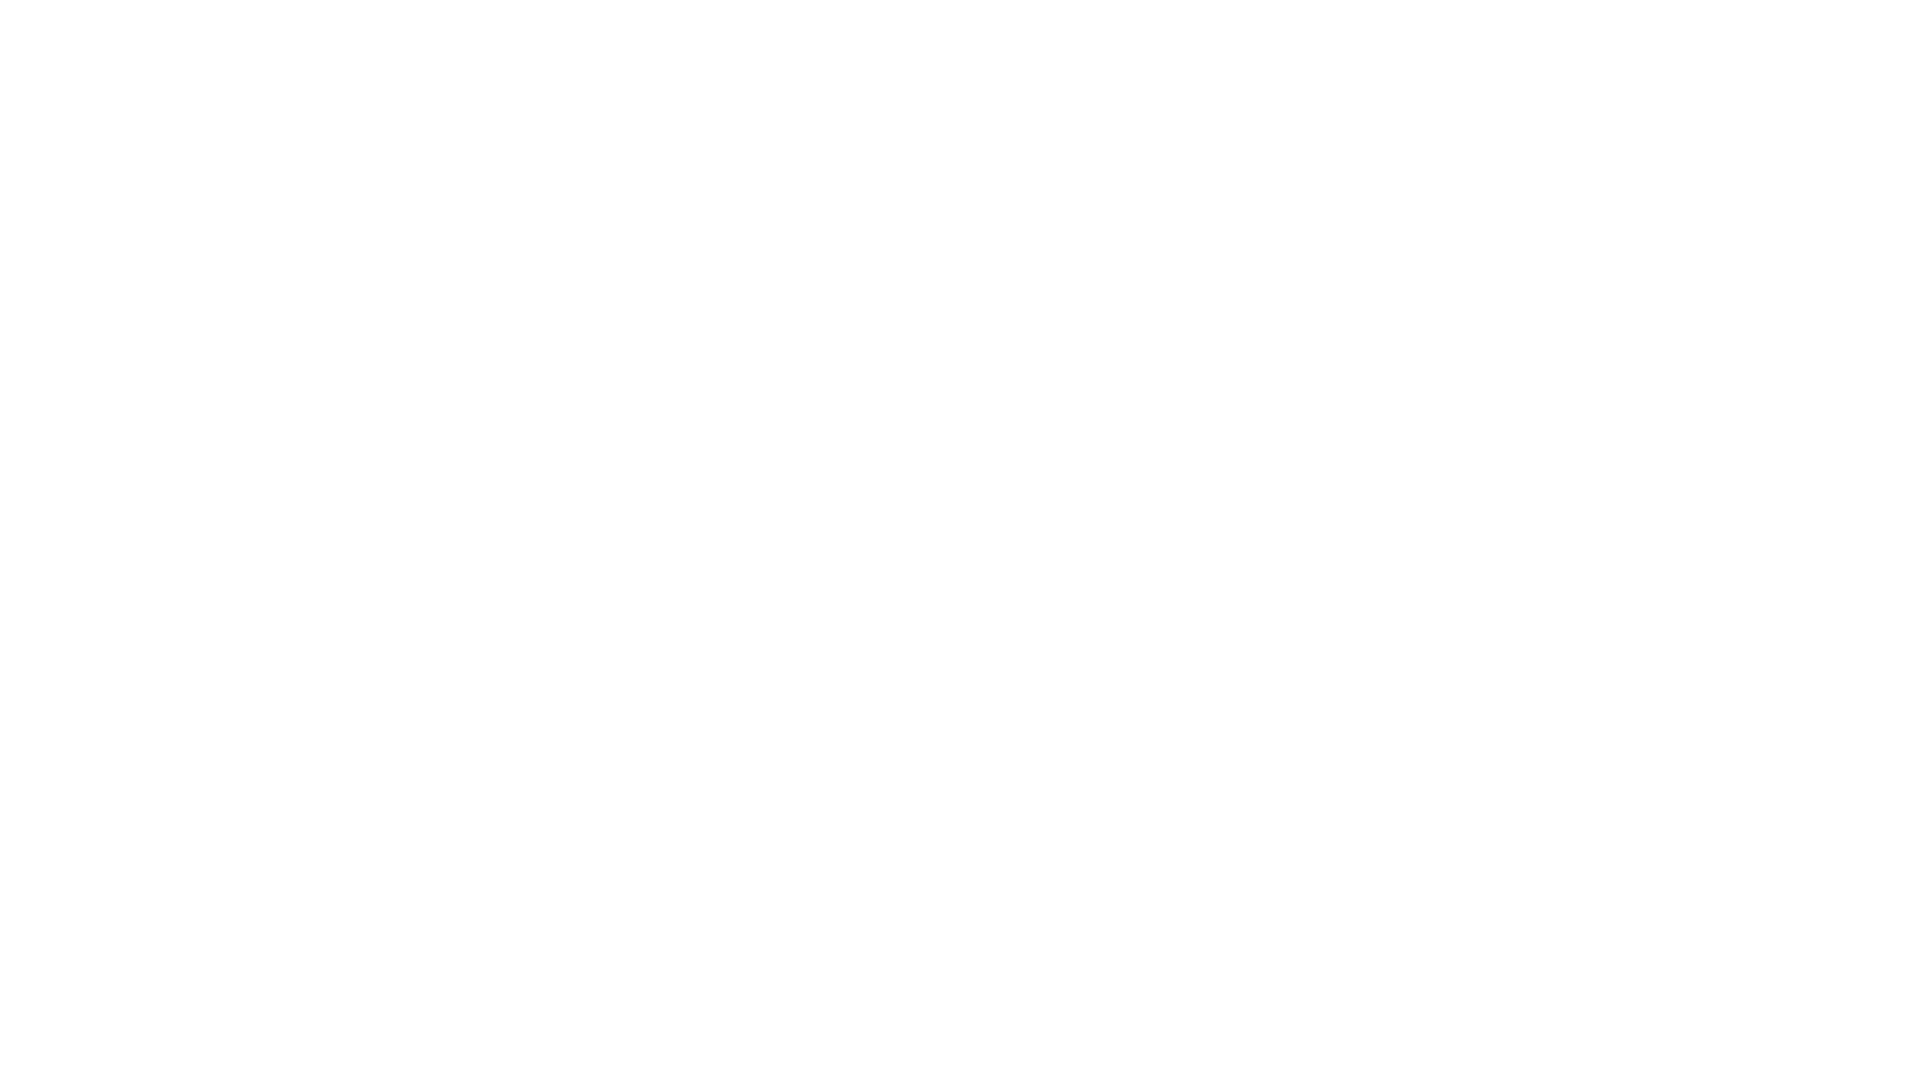 Multimedia Yaman